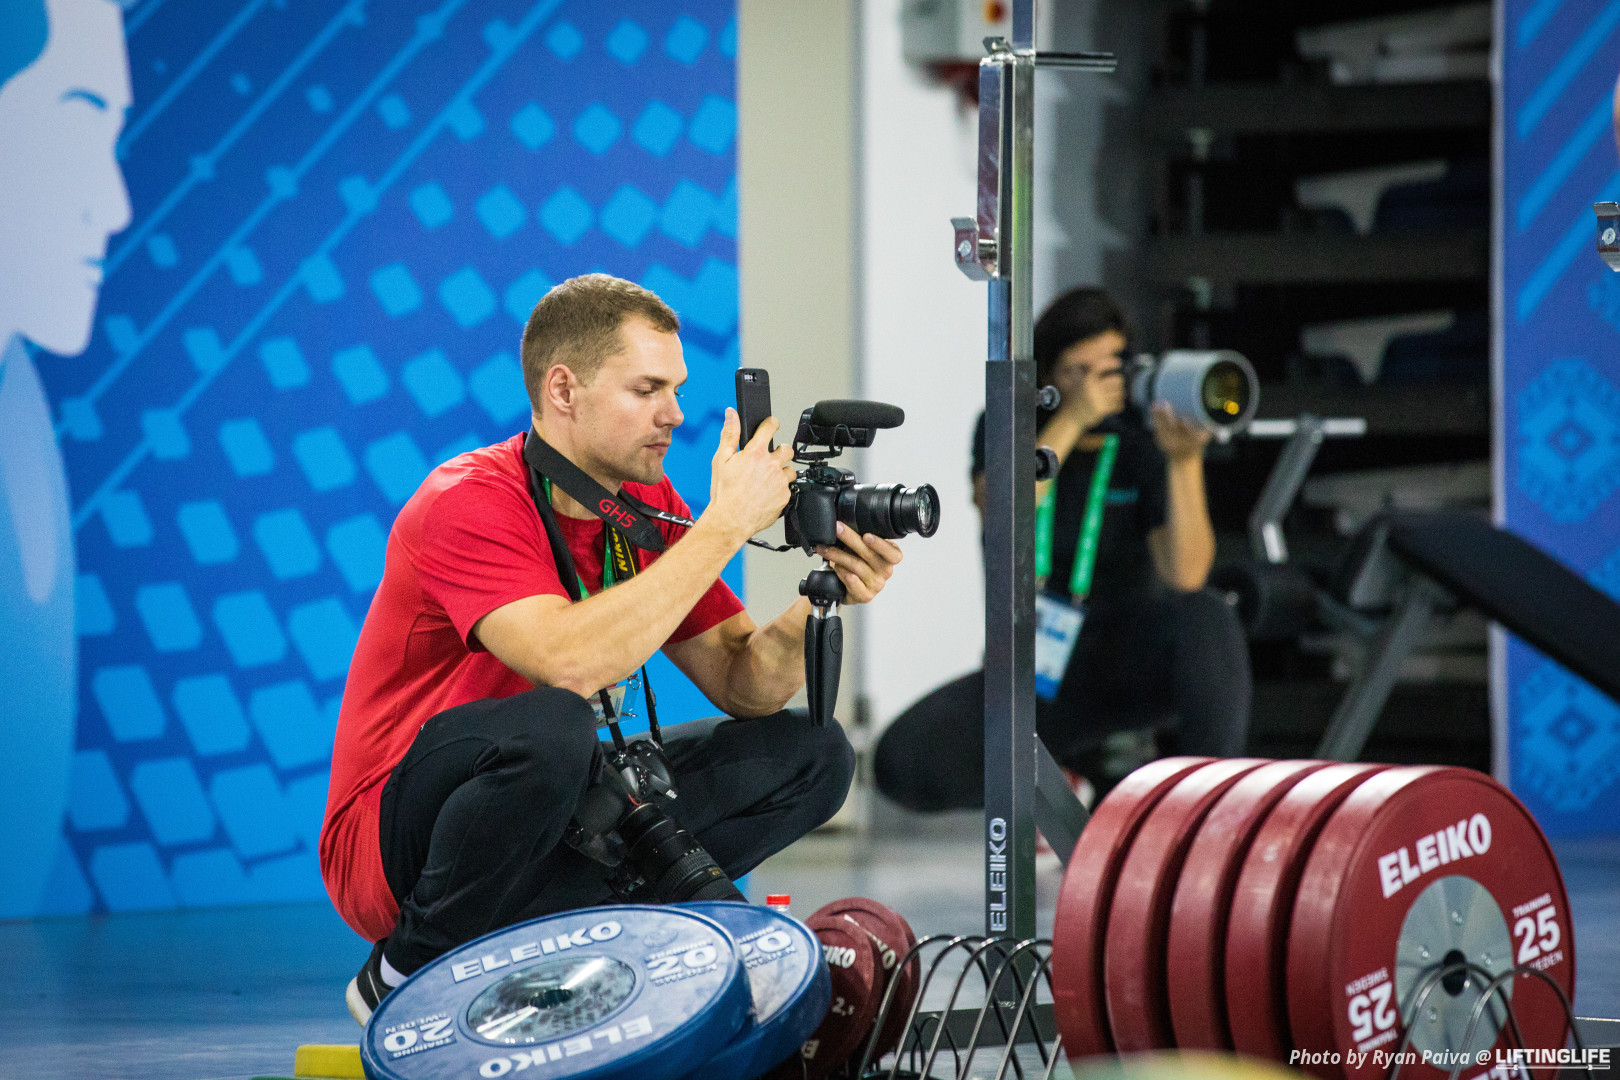 Gregor-winter-all-things-gym-everyday-lifters-viviana-podhaiski